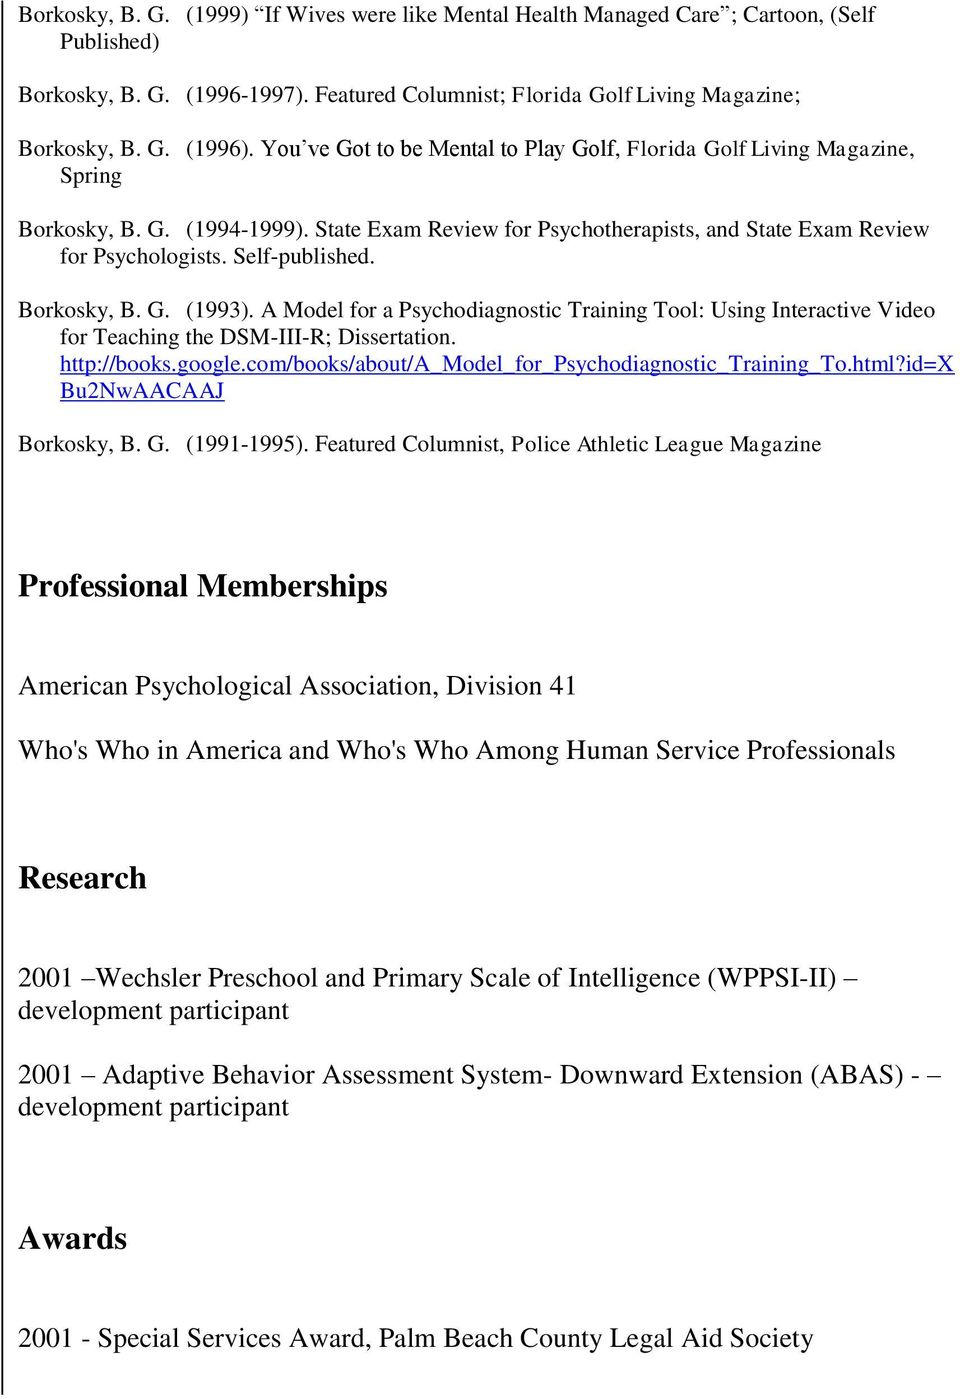 Borkosky, B. G. (1993). A Model for a Psychodiagnostic Training Tool: Using Interactive Video for Teaching the DSM-III-R; Dissertation. http://books.google.